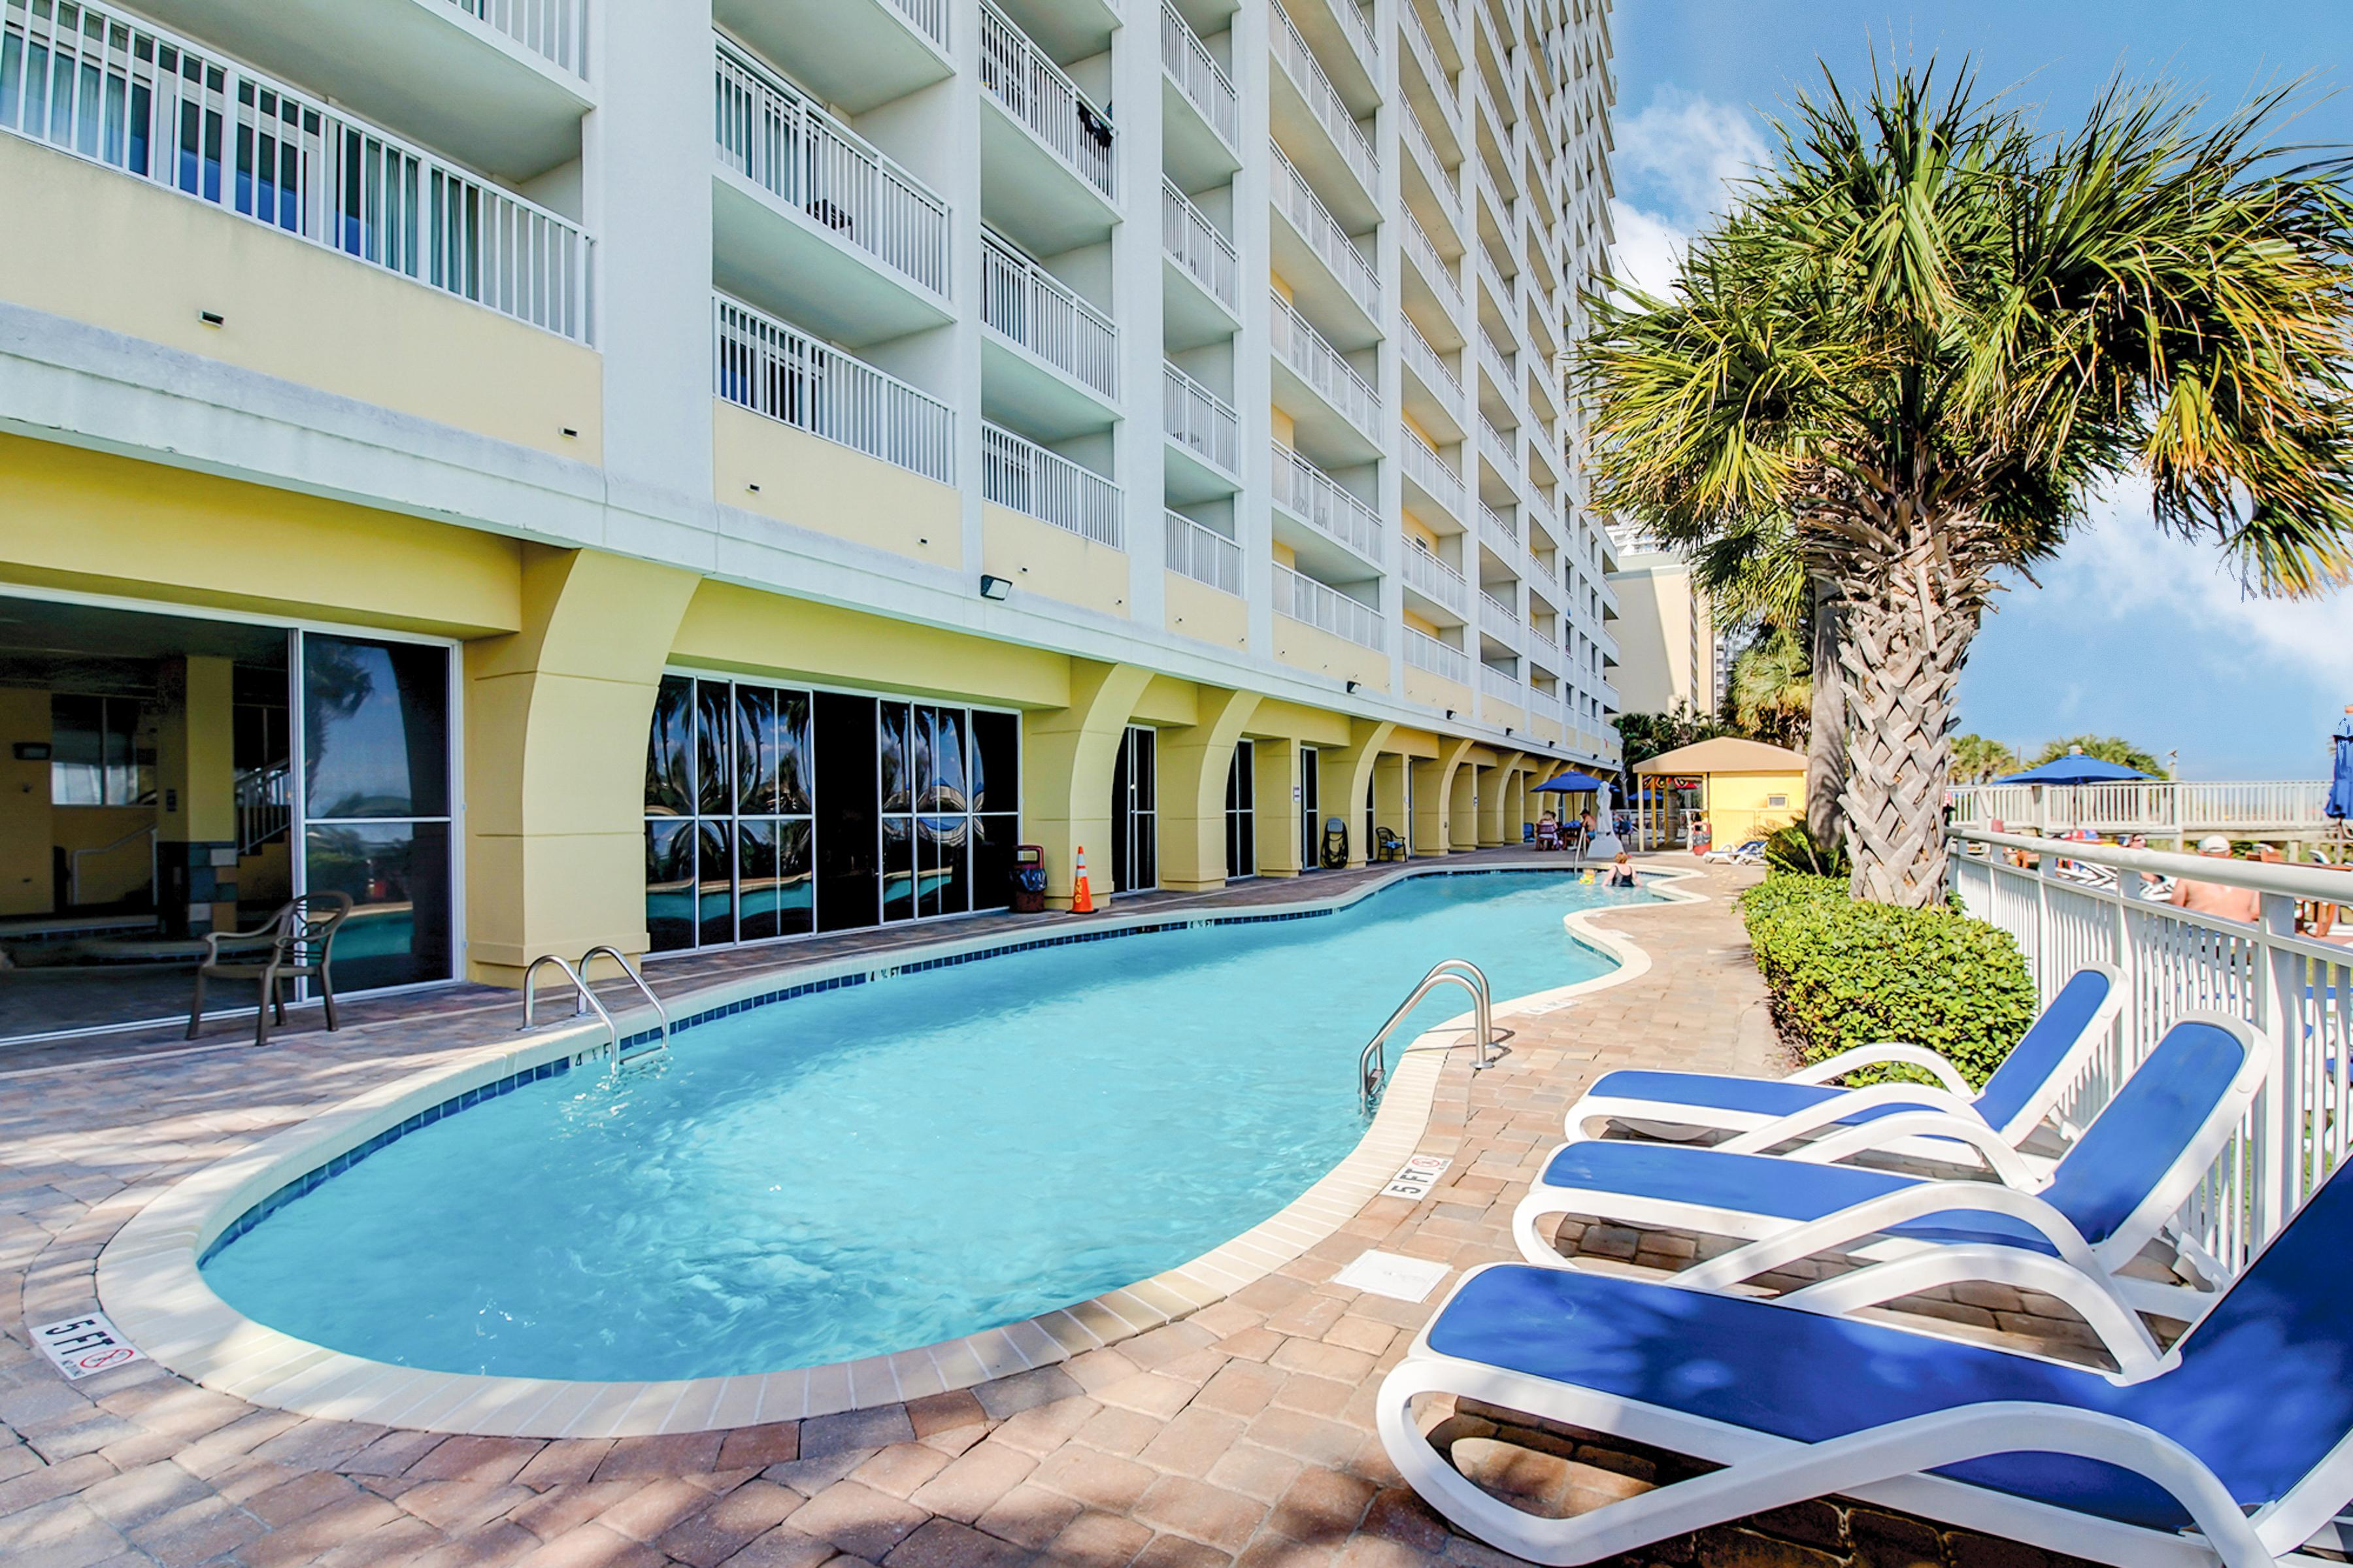 Your condo comes with resort-style amenities, including an oceanfront outdoor pool.